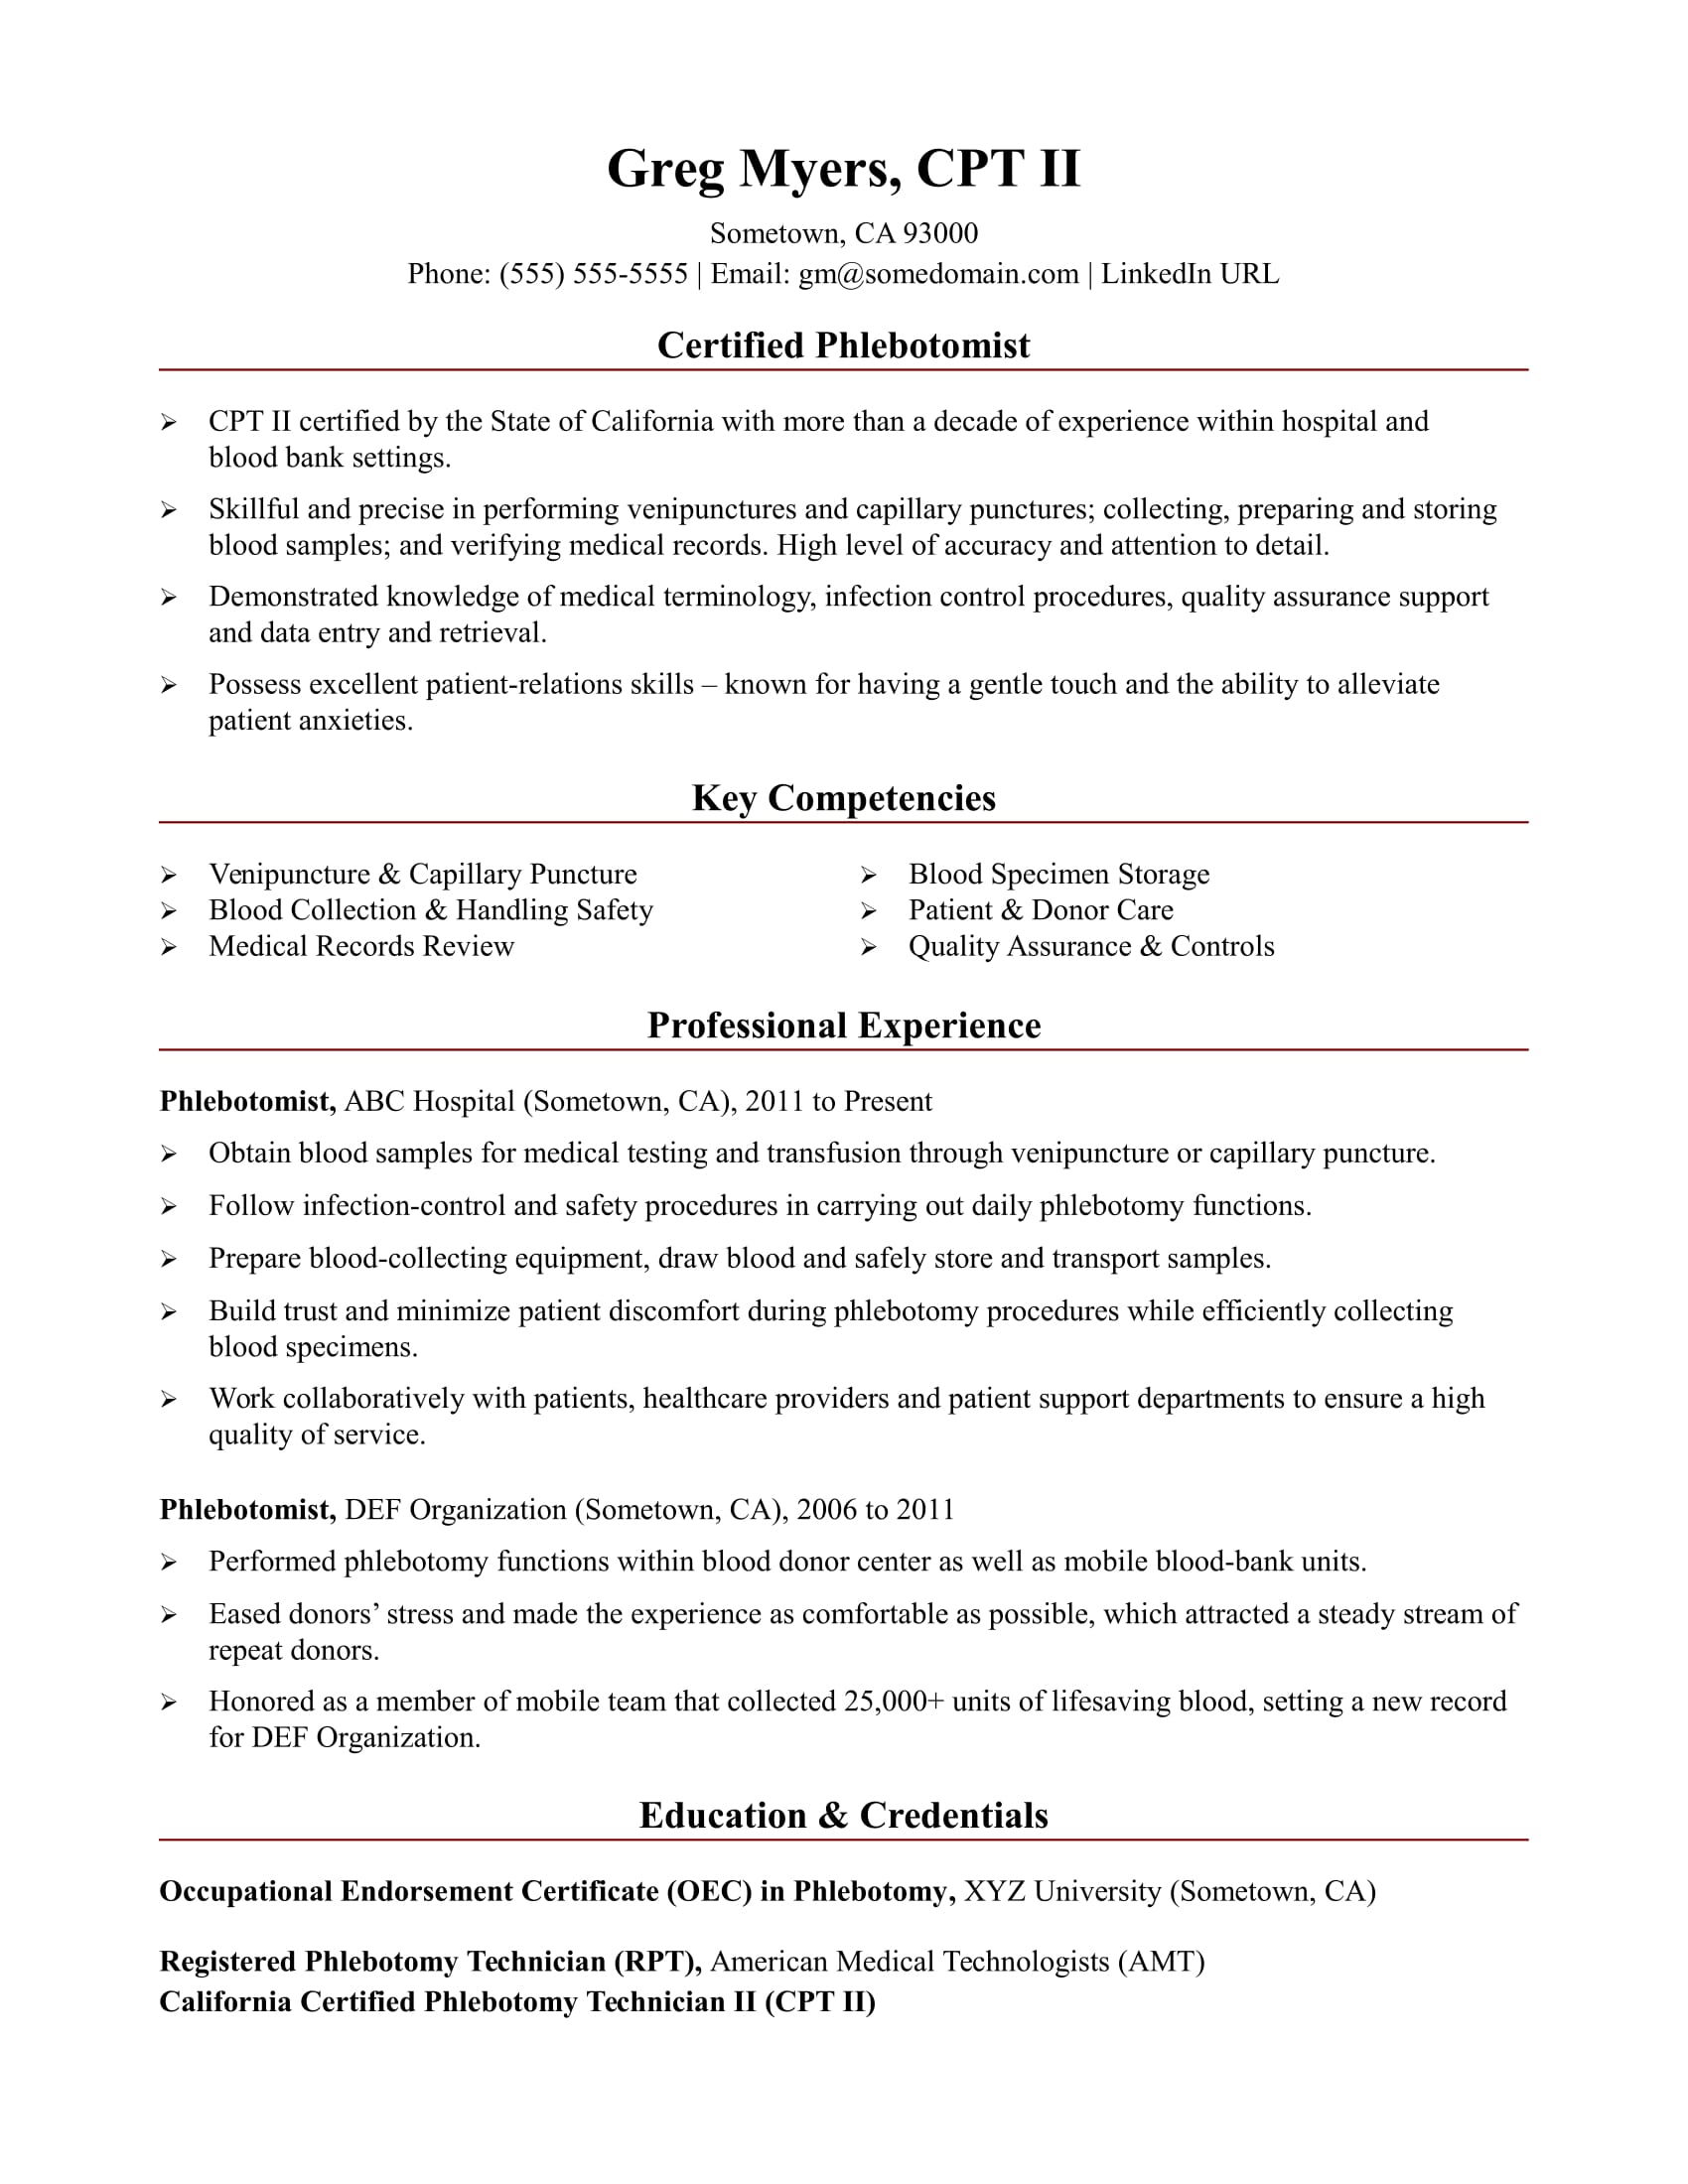 Amazing Sample Resume For A Phlebotomist Regard To Phlebotomist Resume Examples